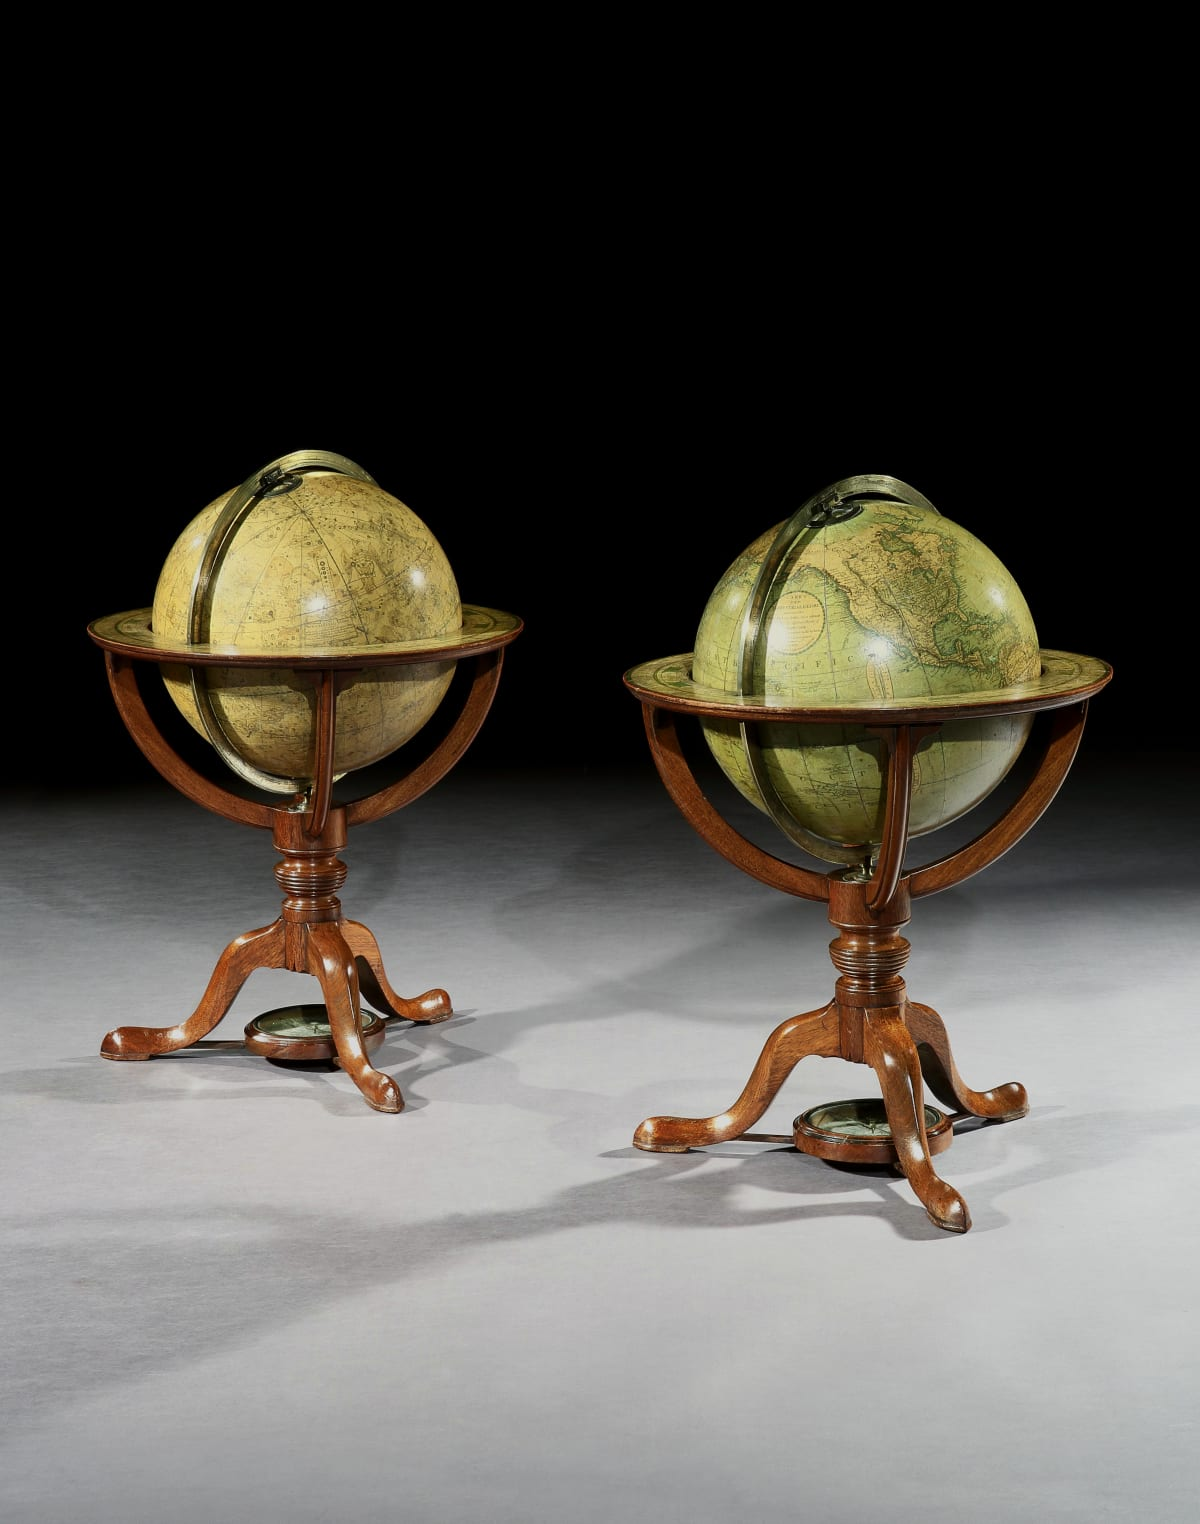 A PAIR OF GEORGE III TABLE GLOBES BY J.W CARY, ENGLISH, CIRCA 1816